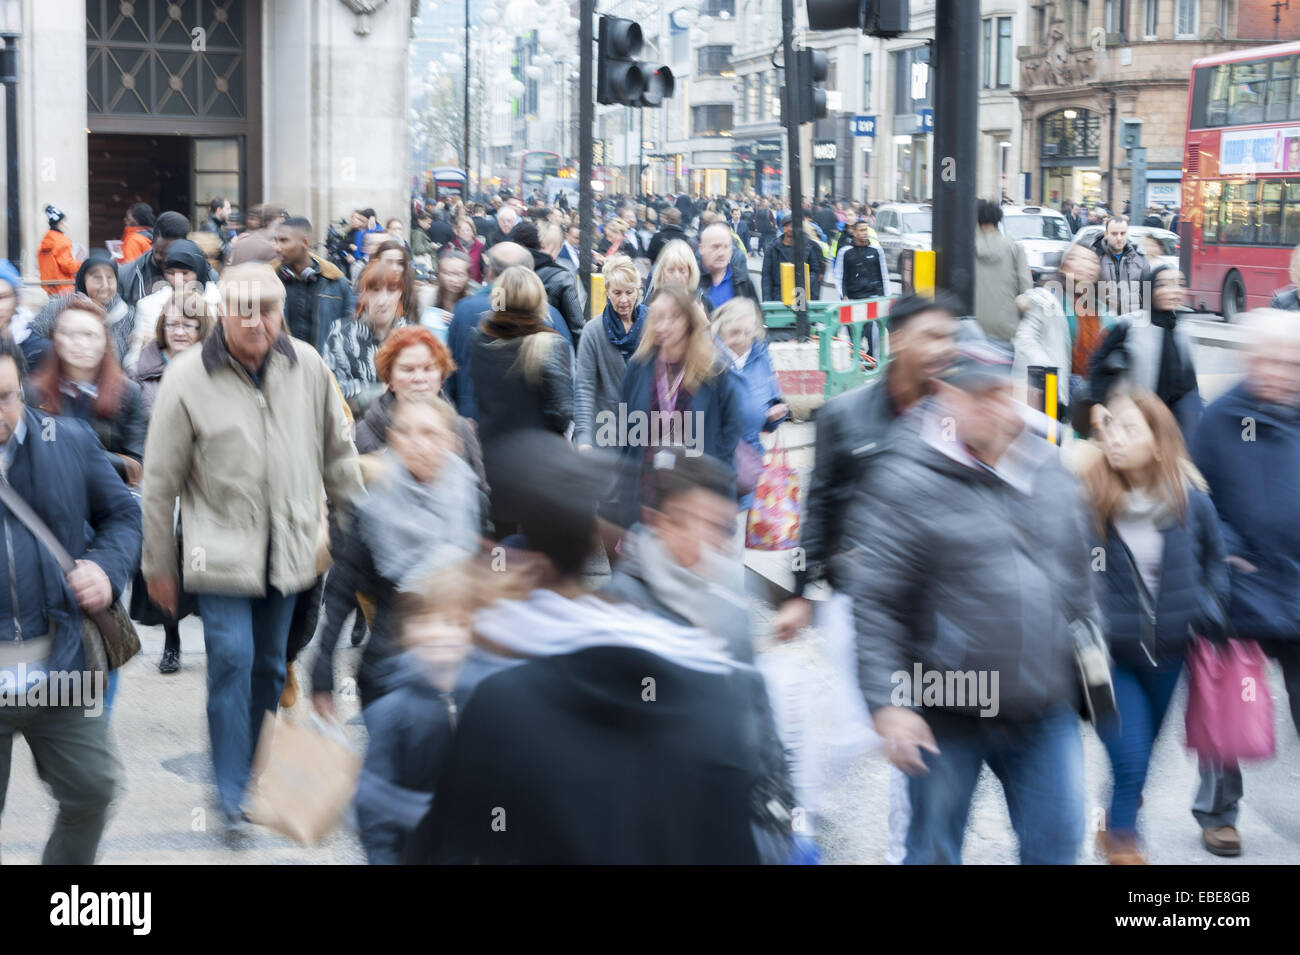 London, London, UK. 28th Nov, 2014. Brisk business is expected today on Black Friday in central London as one of - Stock Image